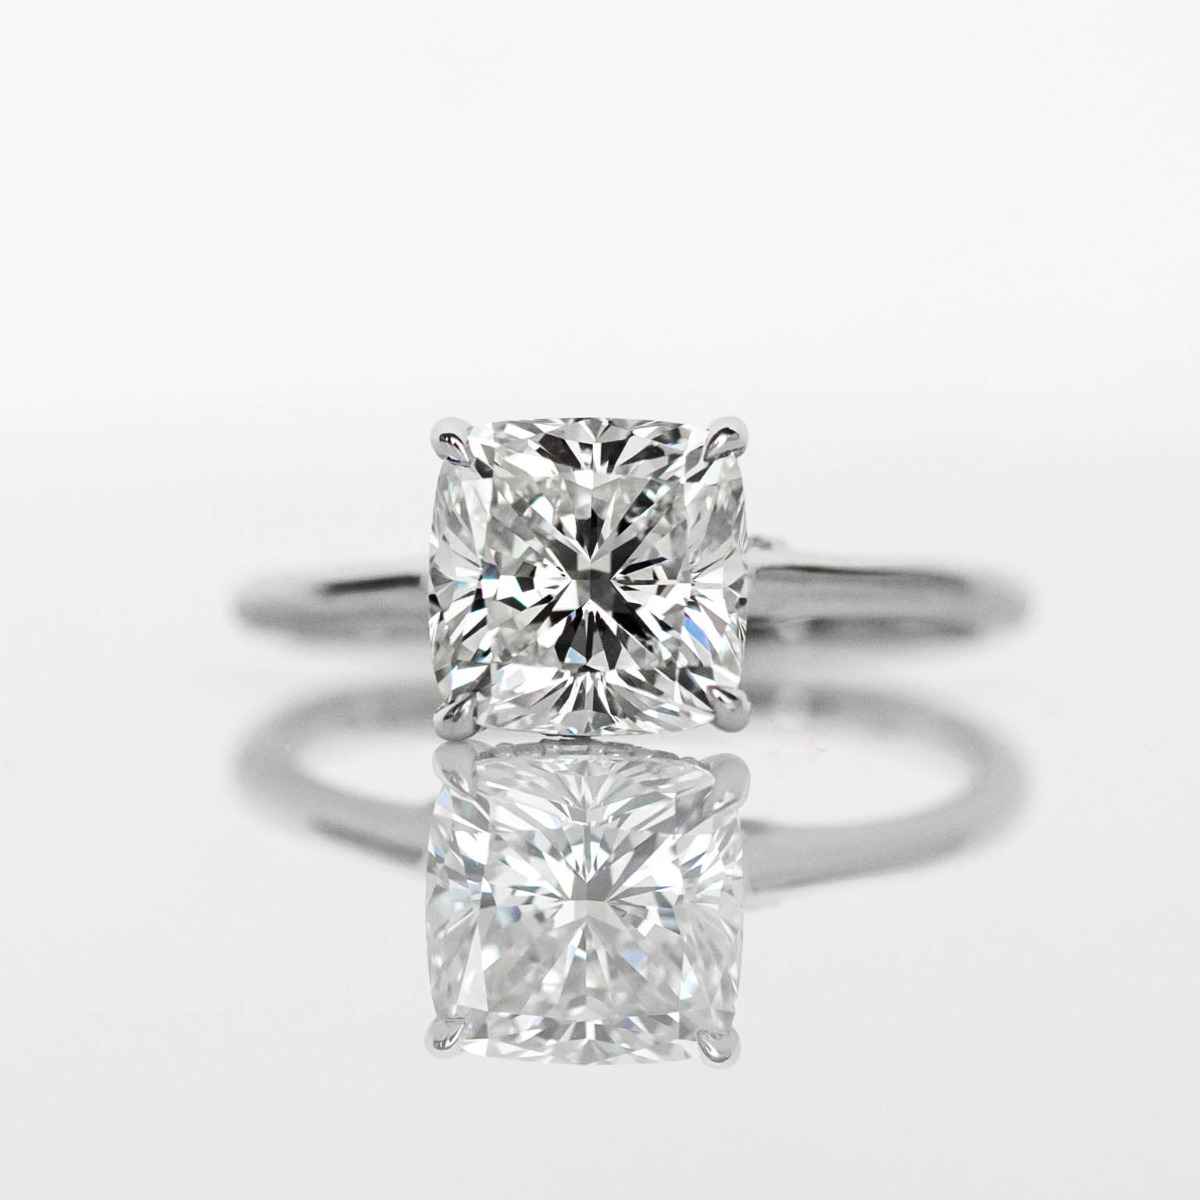 Cushion Cut DBK Classic Solitaire Setting With Diamond Basket & Bridge  In White Gold